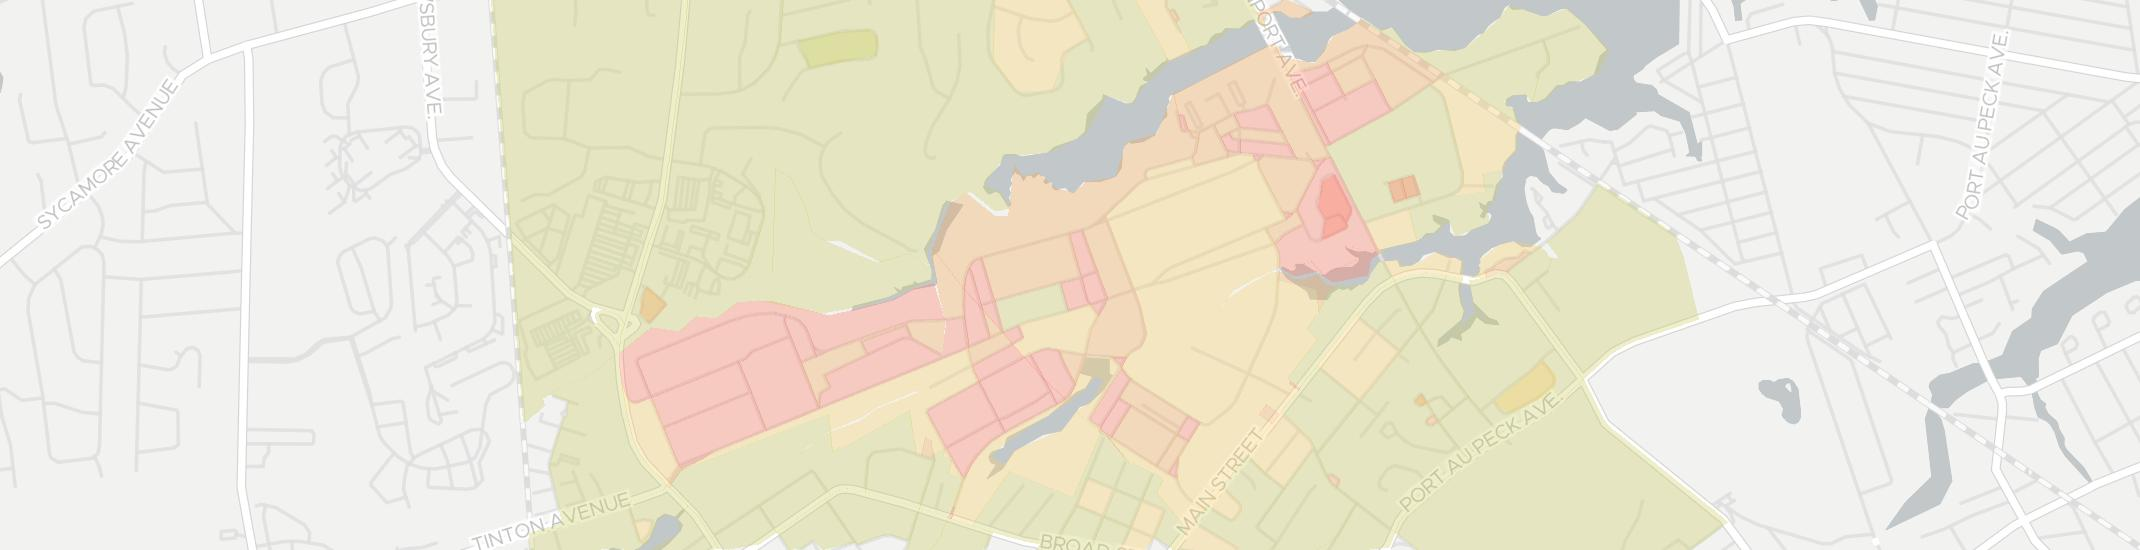 Fort Monmouth Internet Competition Map. Click for interactive map.